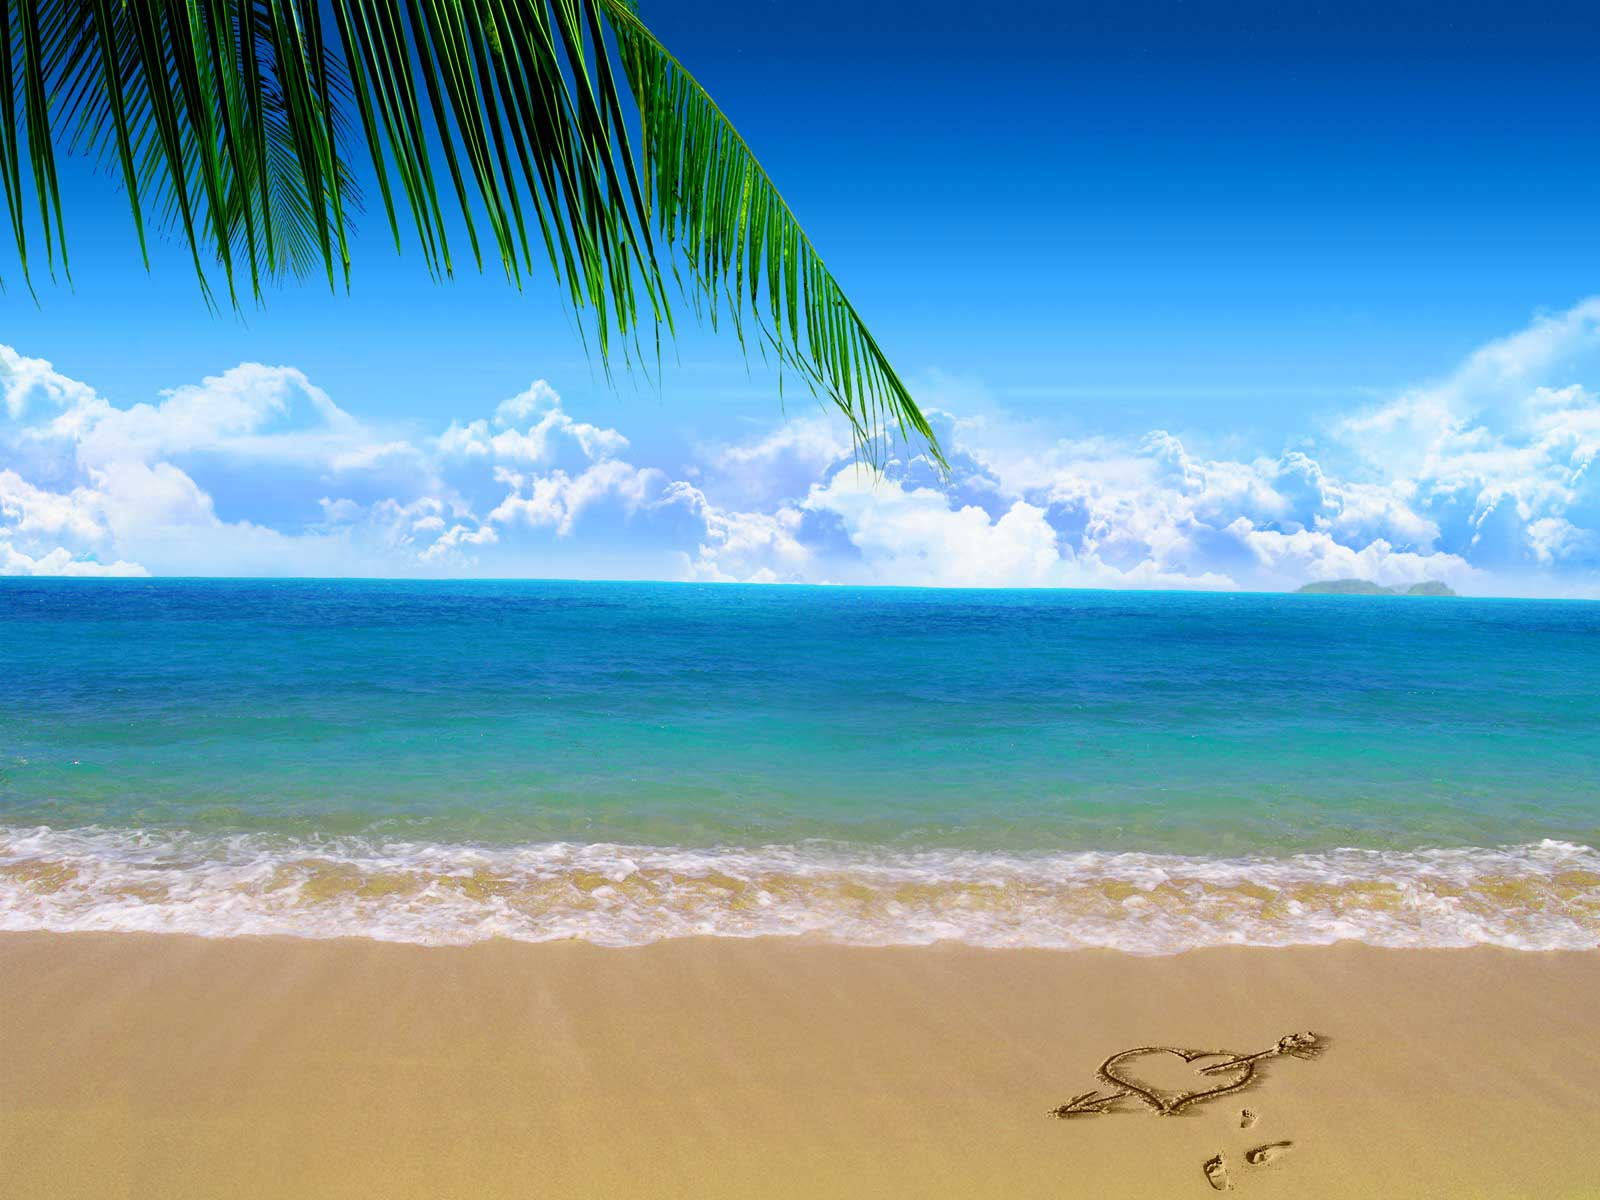 Heart in the Sand on a Beach